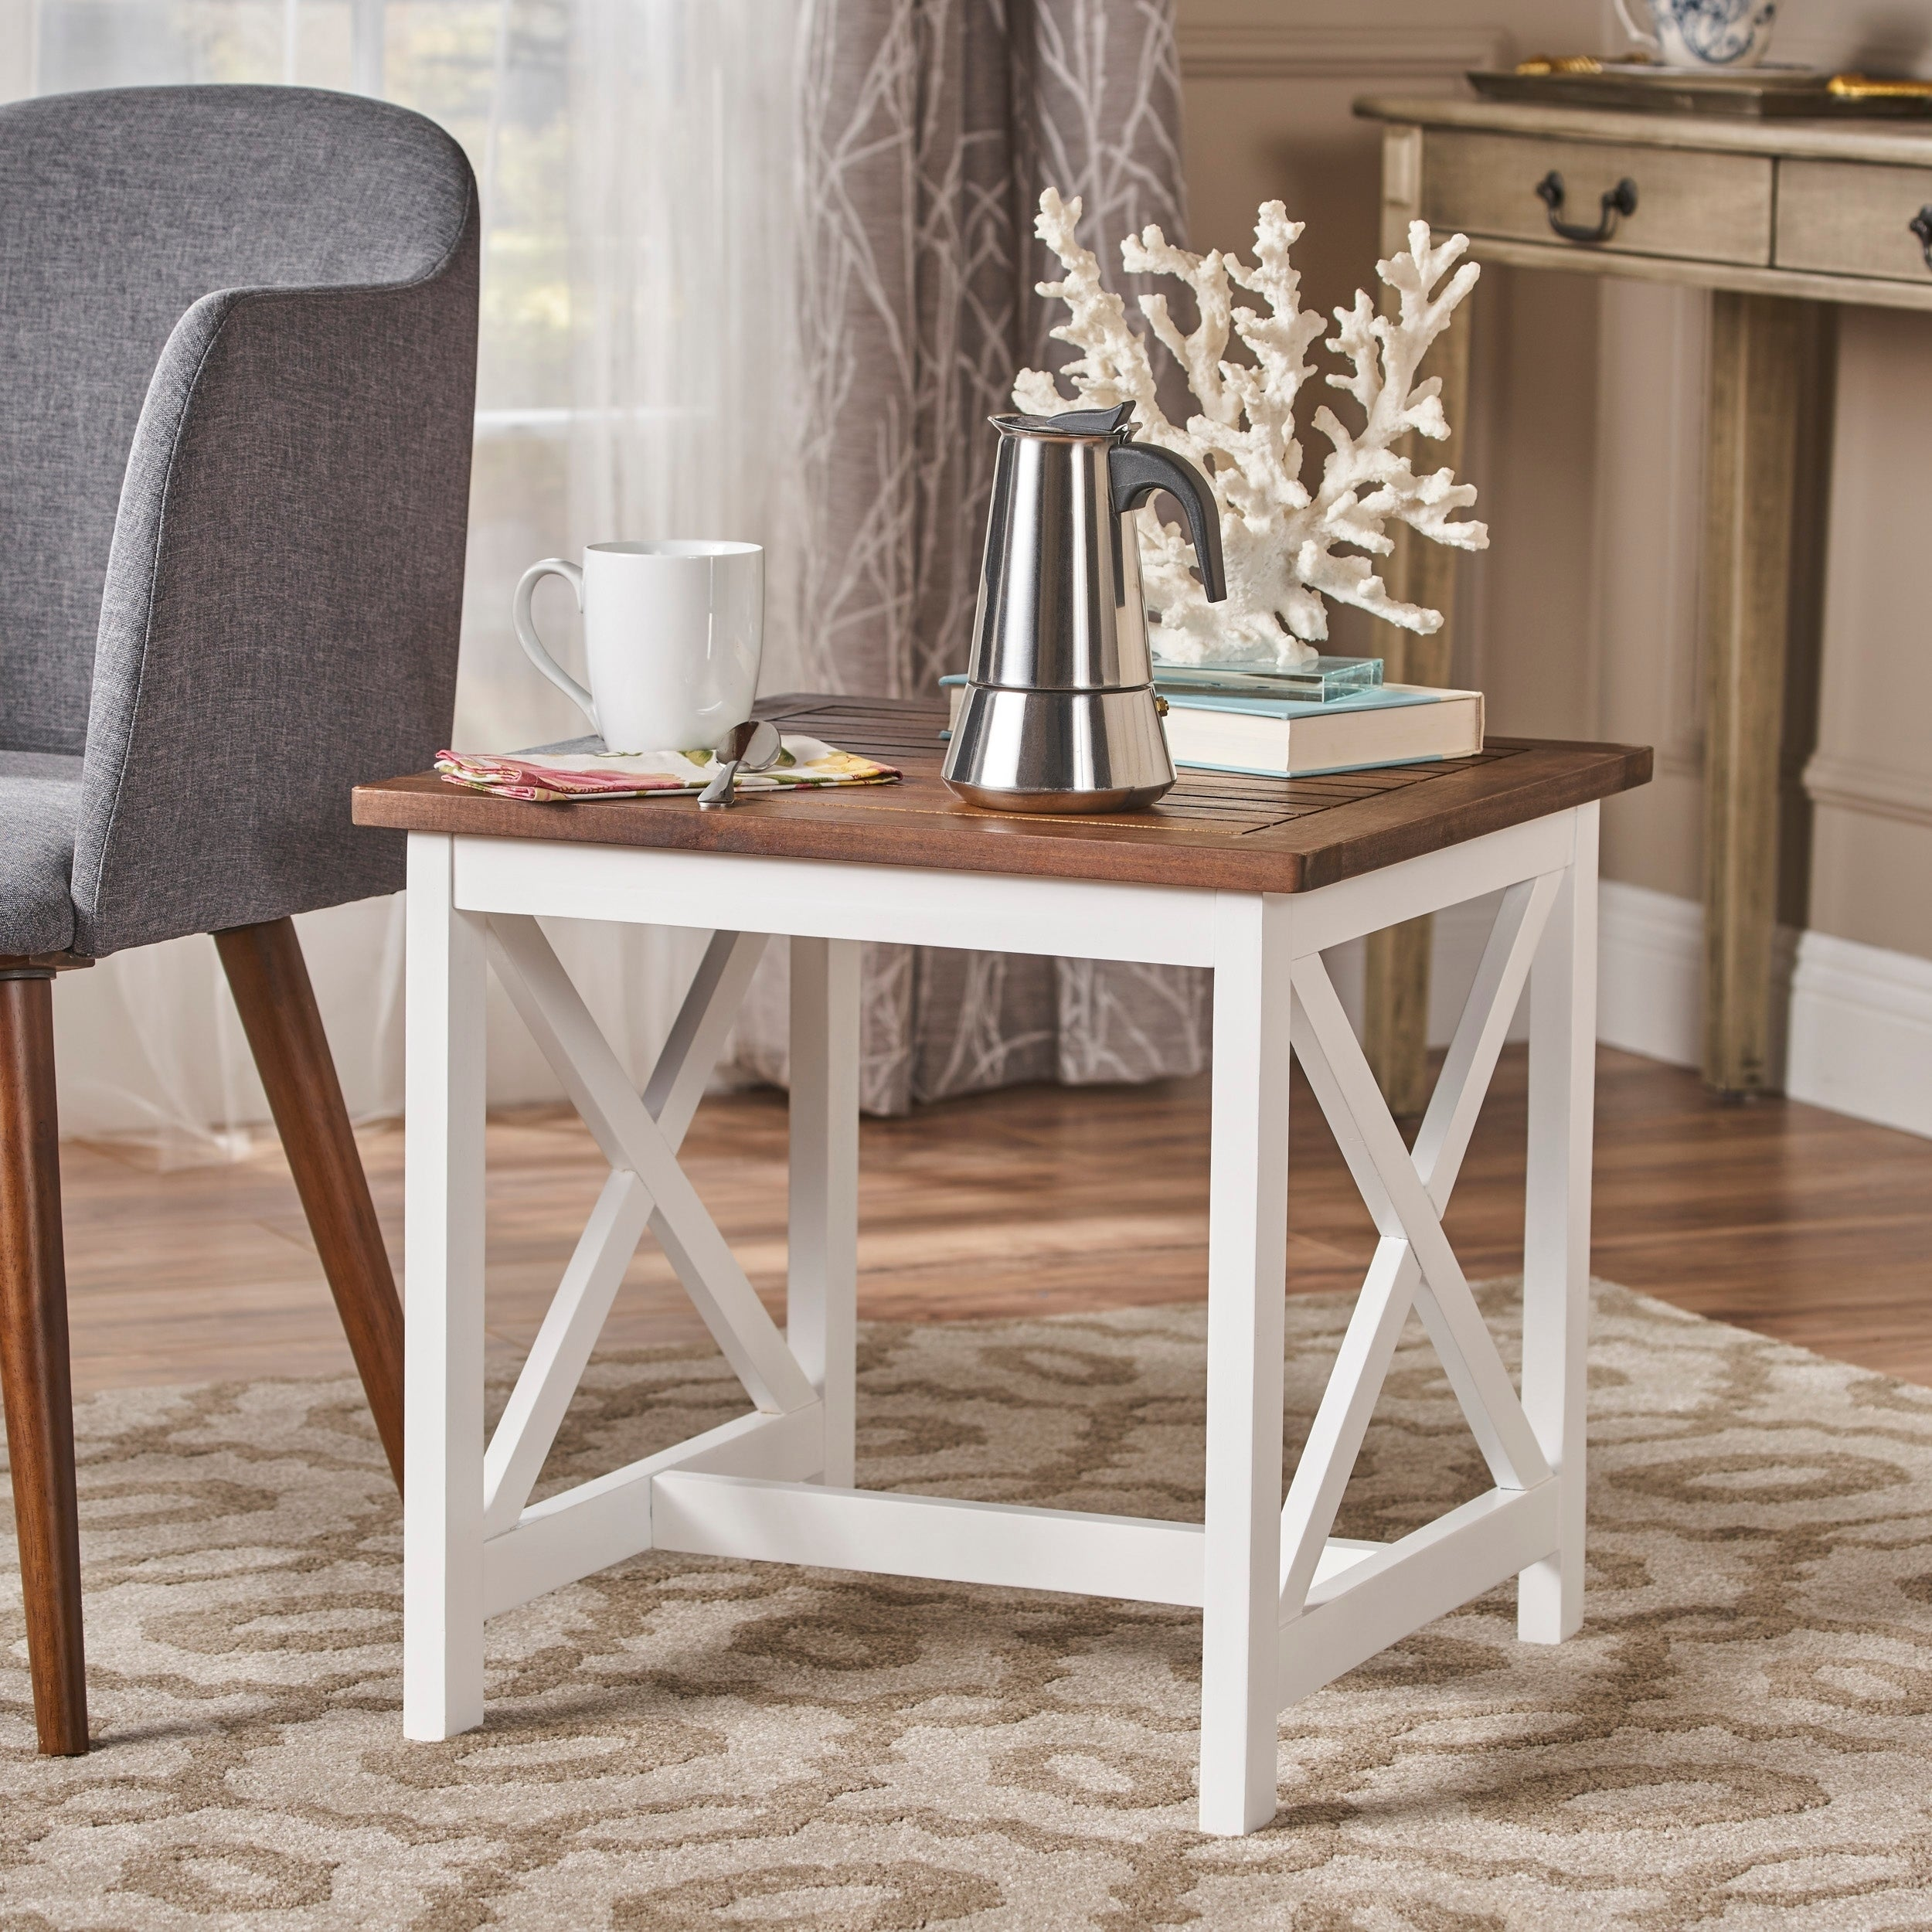 Shammai Square Farmhouse Acacia Wood End Table By Christopher Knight Home